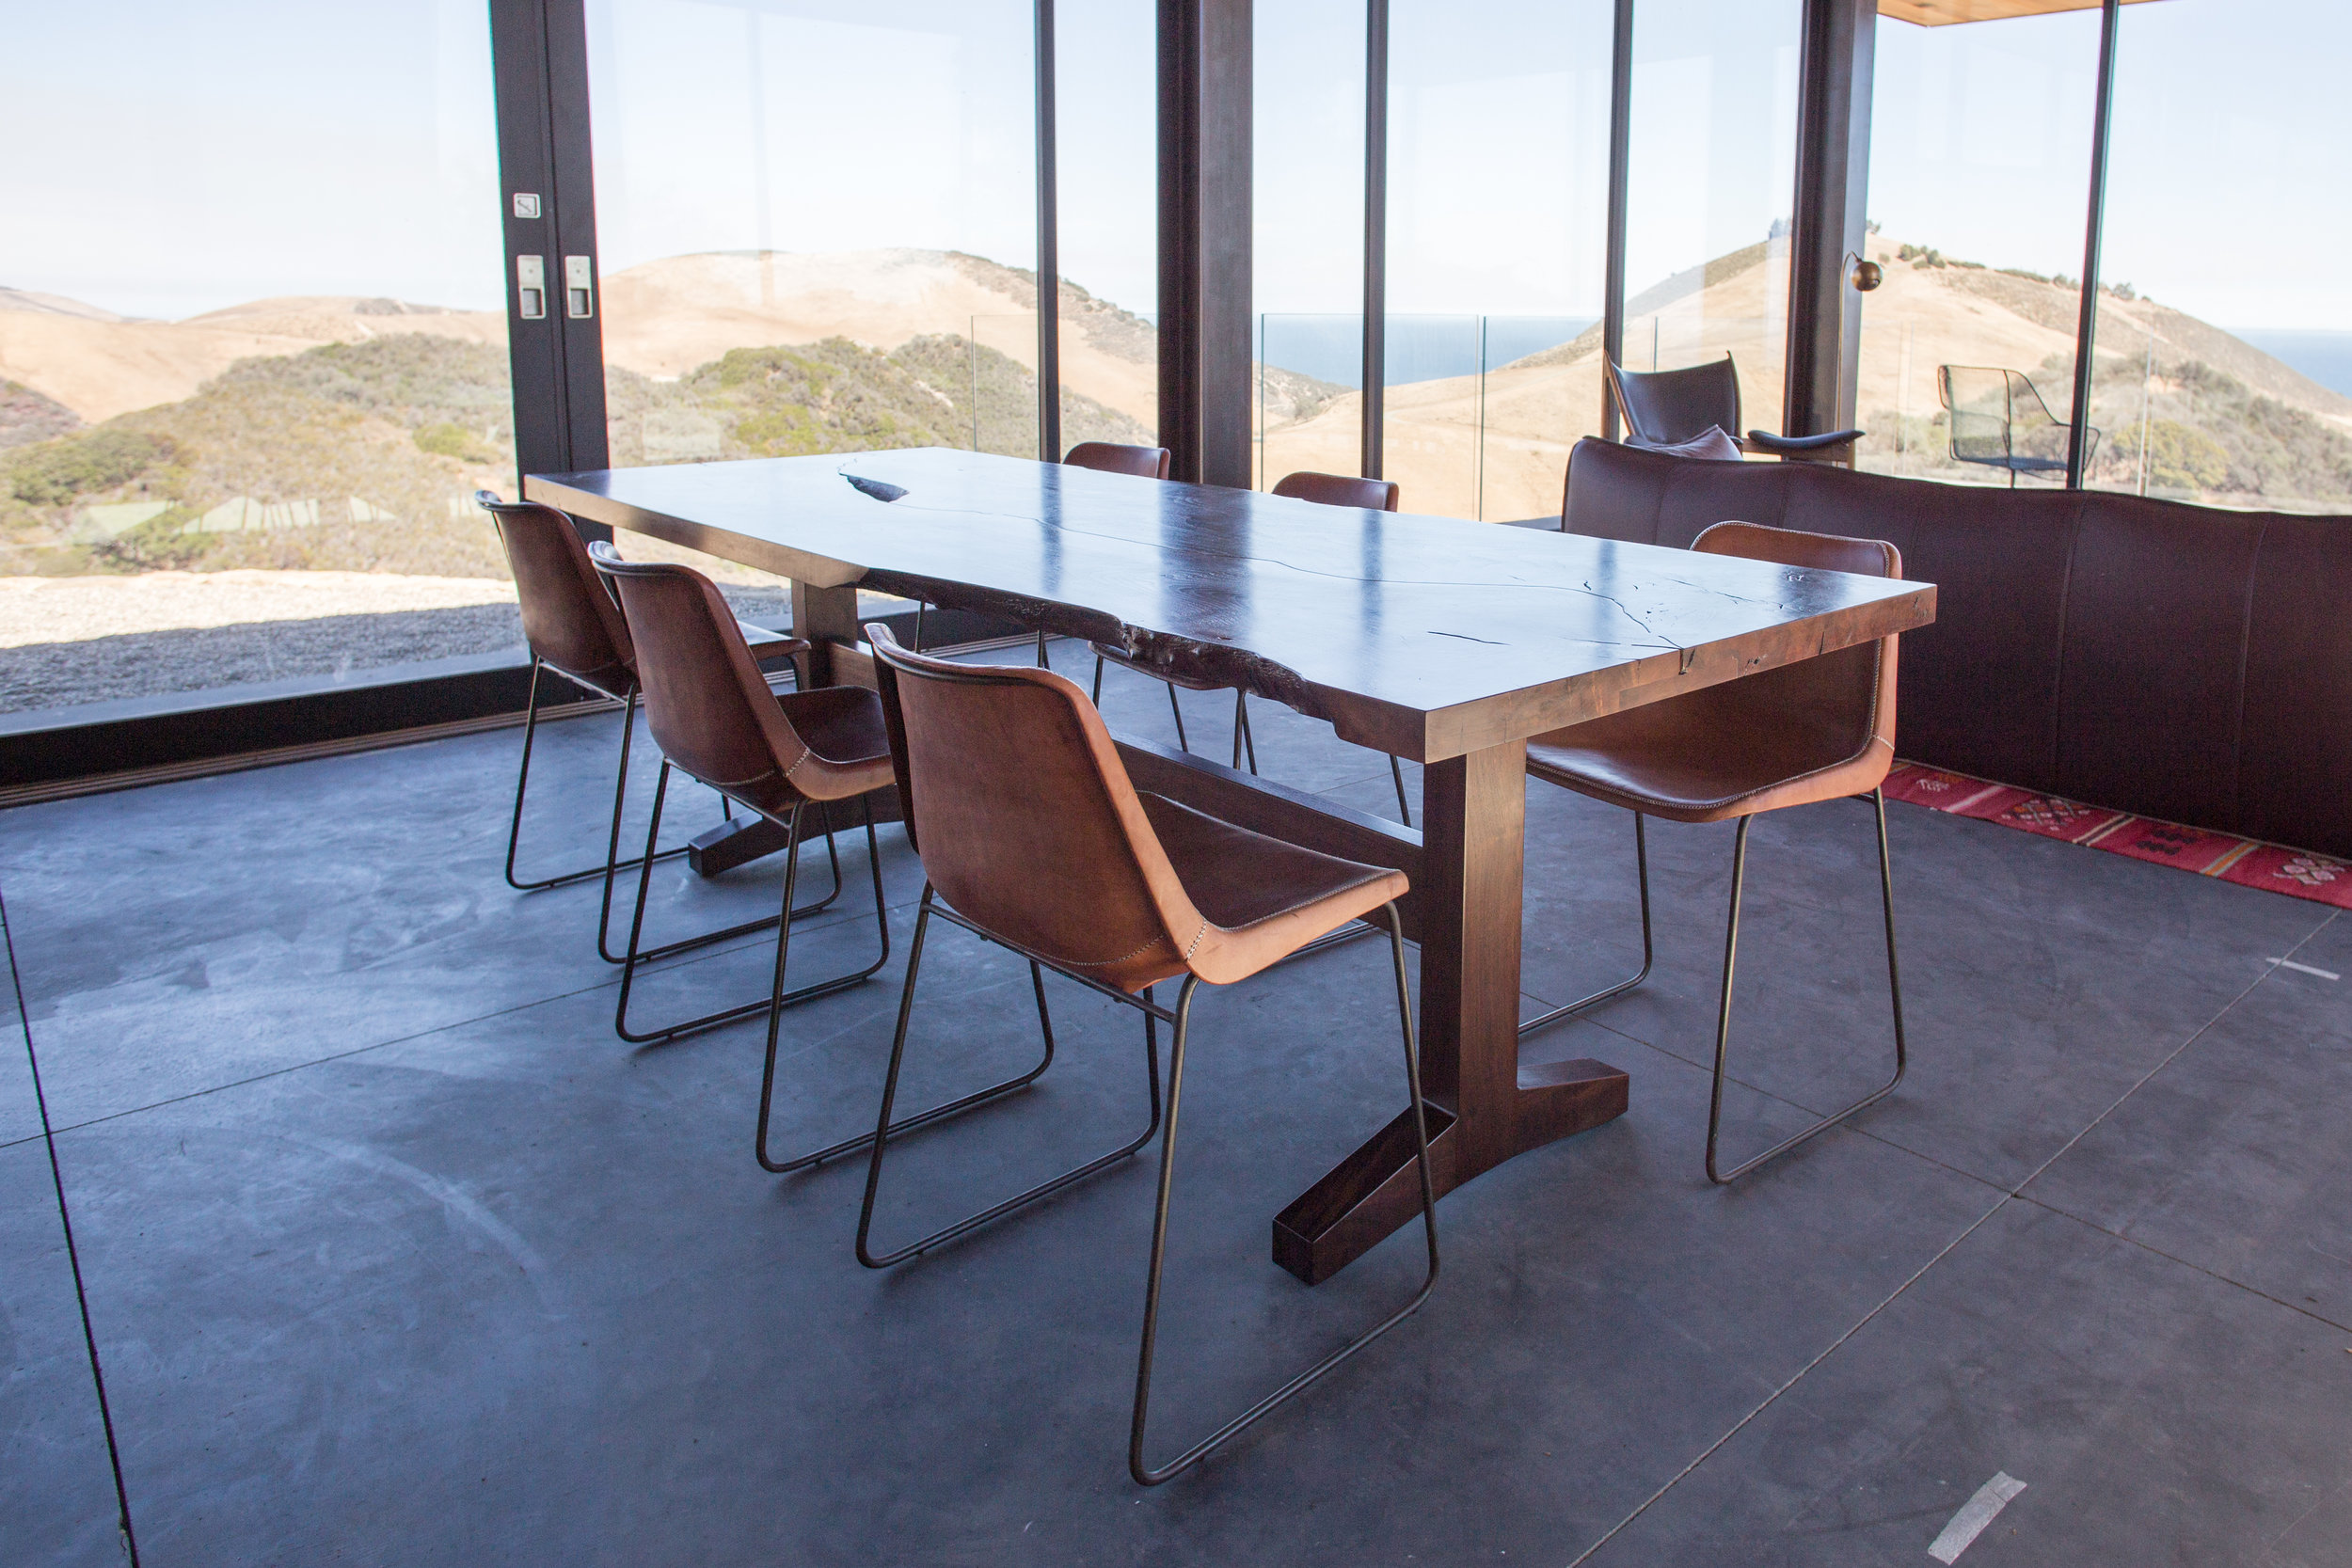 The San Andreas table